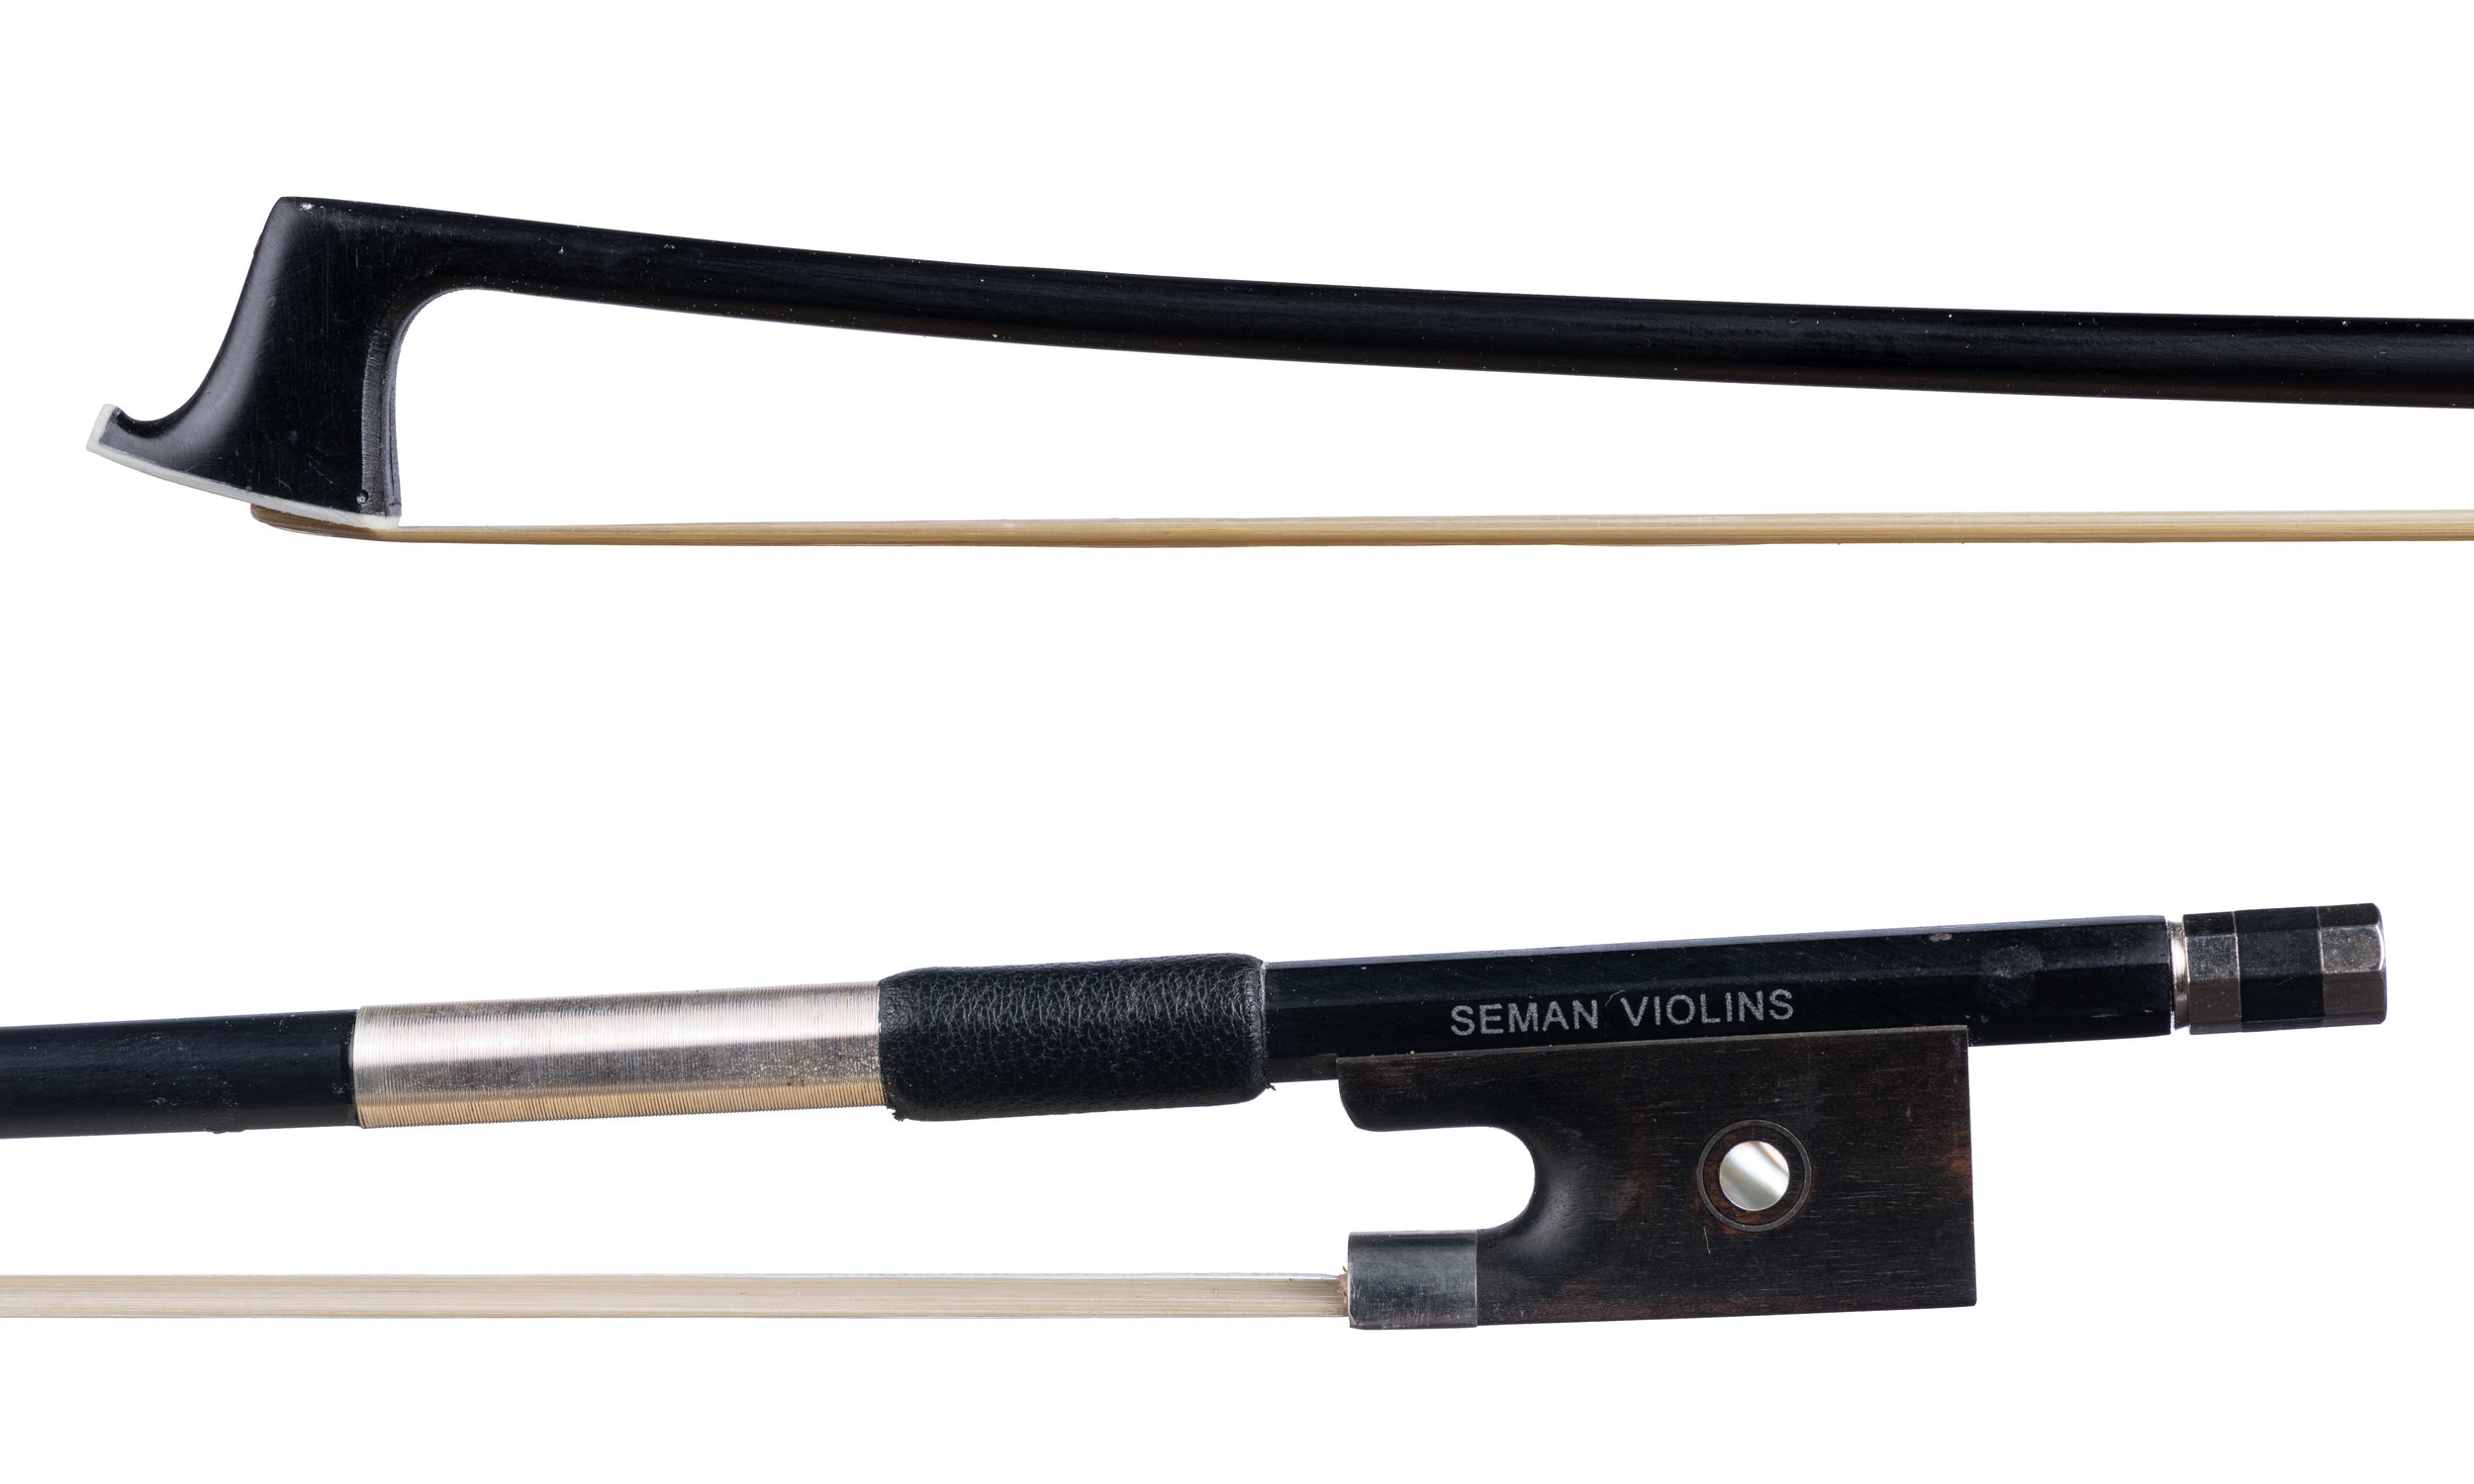 Seman Violins - Nickel-mounted ebony frog